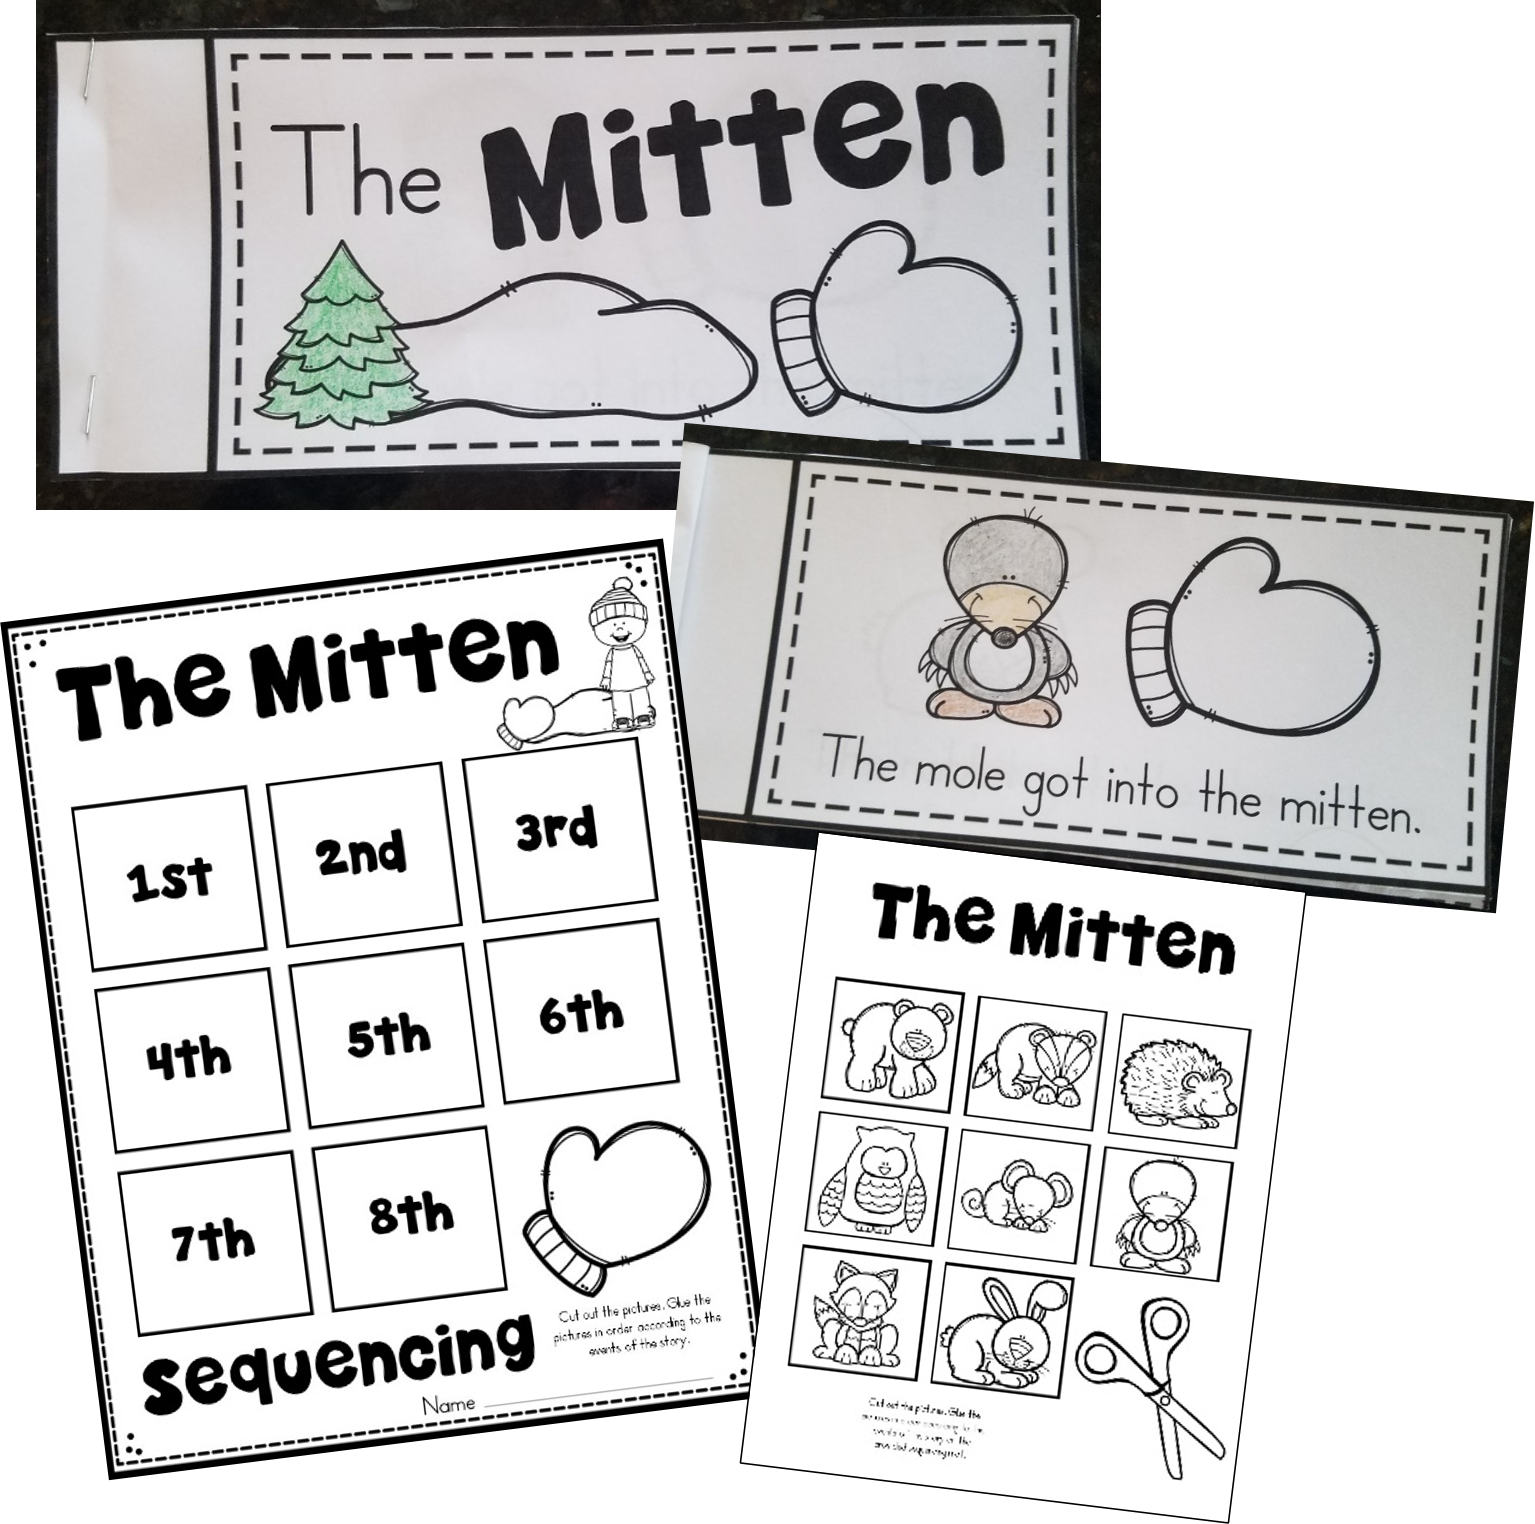 16 Activities To Go With The Mitten By Jan Brett